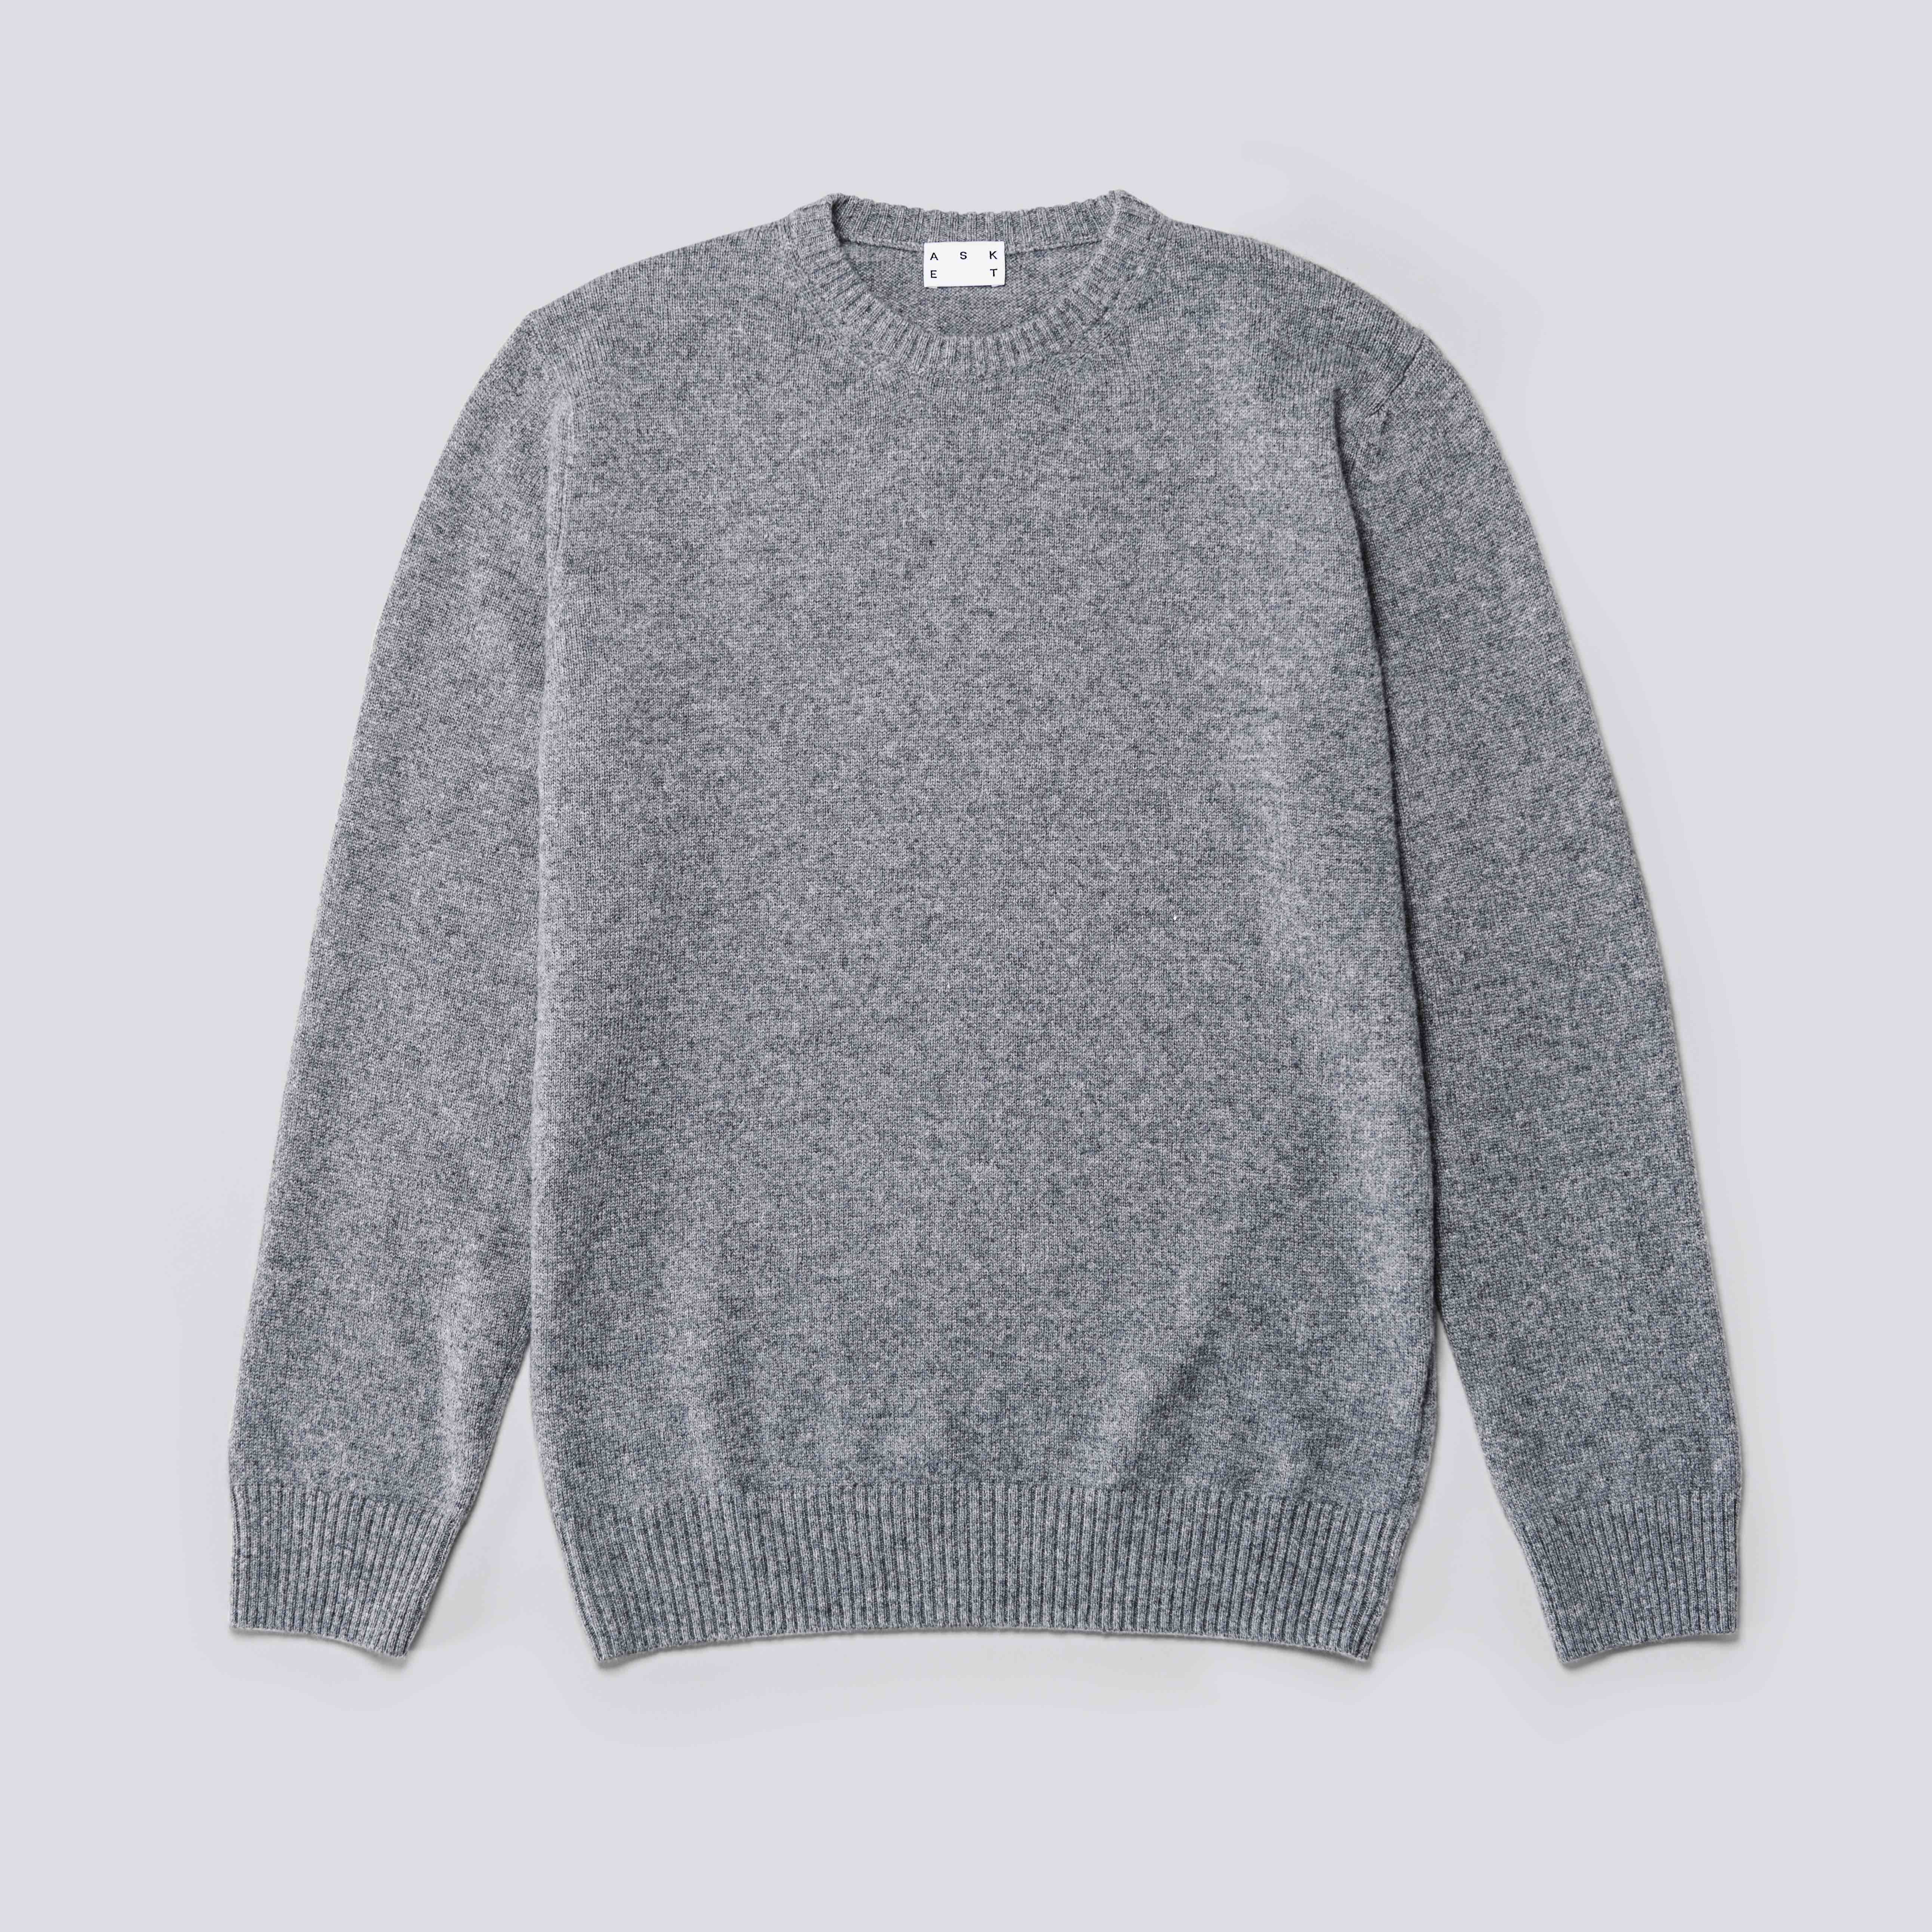 The Asket Dark Grey Cashmere Sweater | The ASKET Cashmere Sweater ...